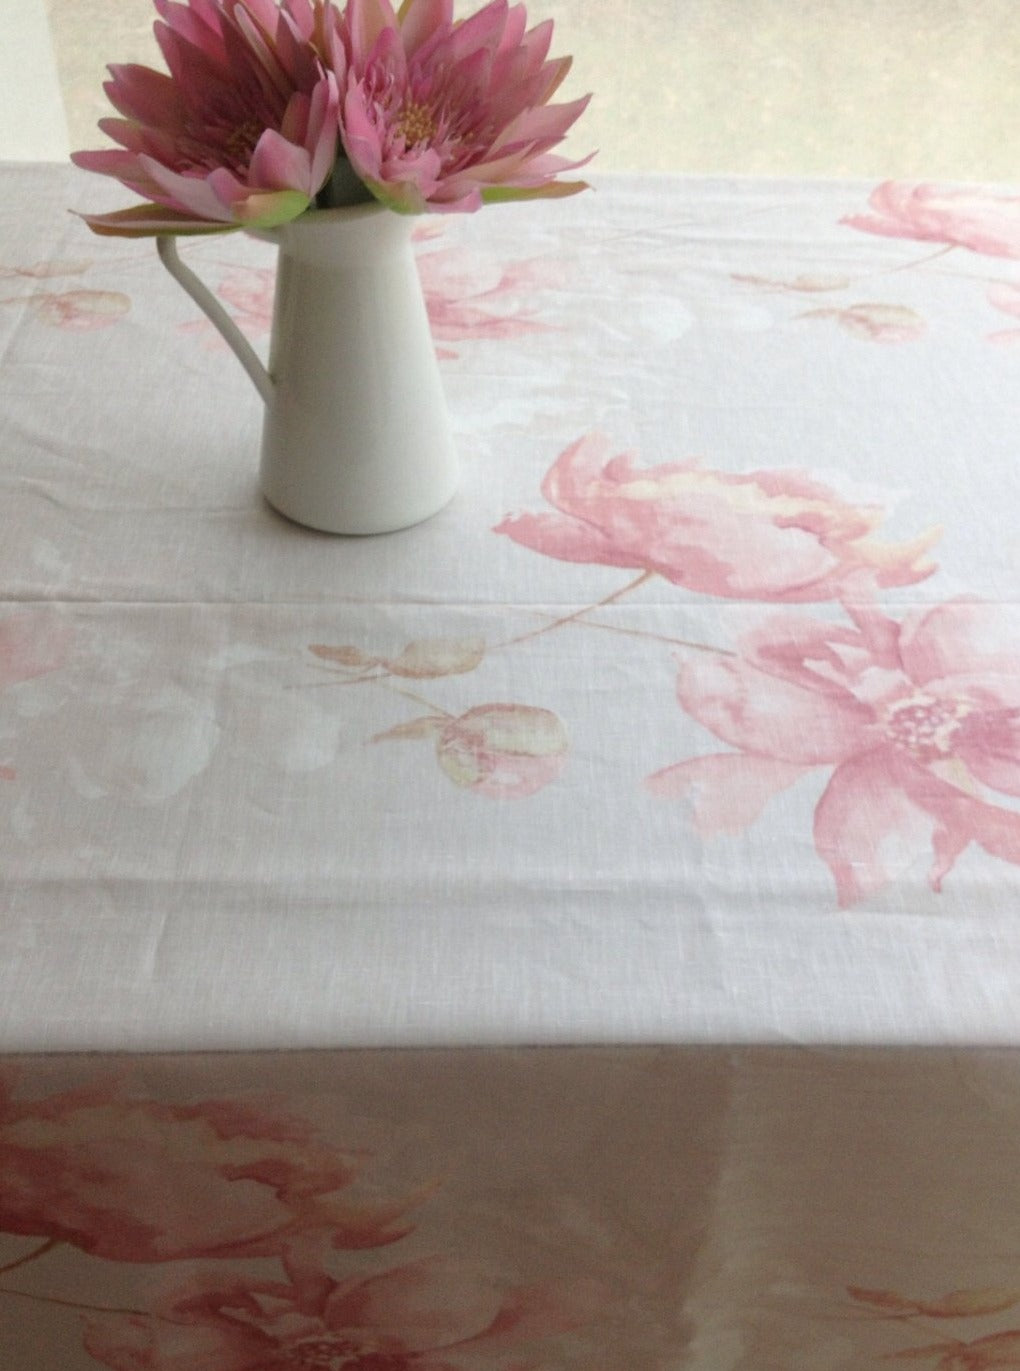 Romantic Linen Tablecloth with Soft Pink and White Flower Print, Light Gray linen tablecloth with flower print